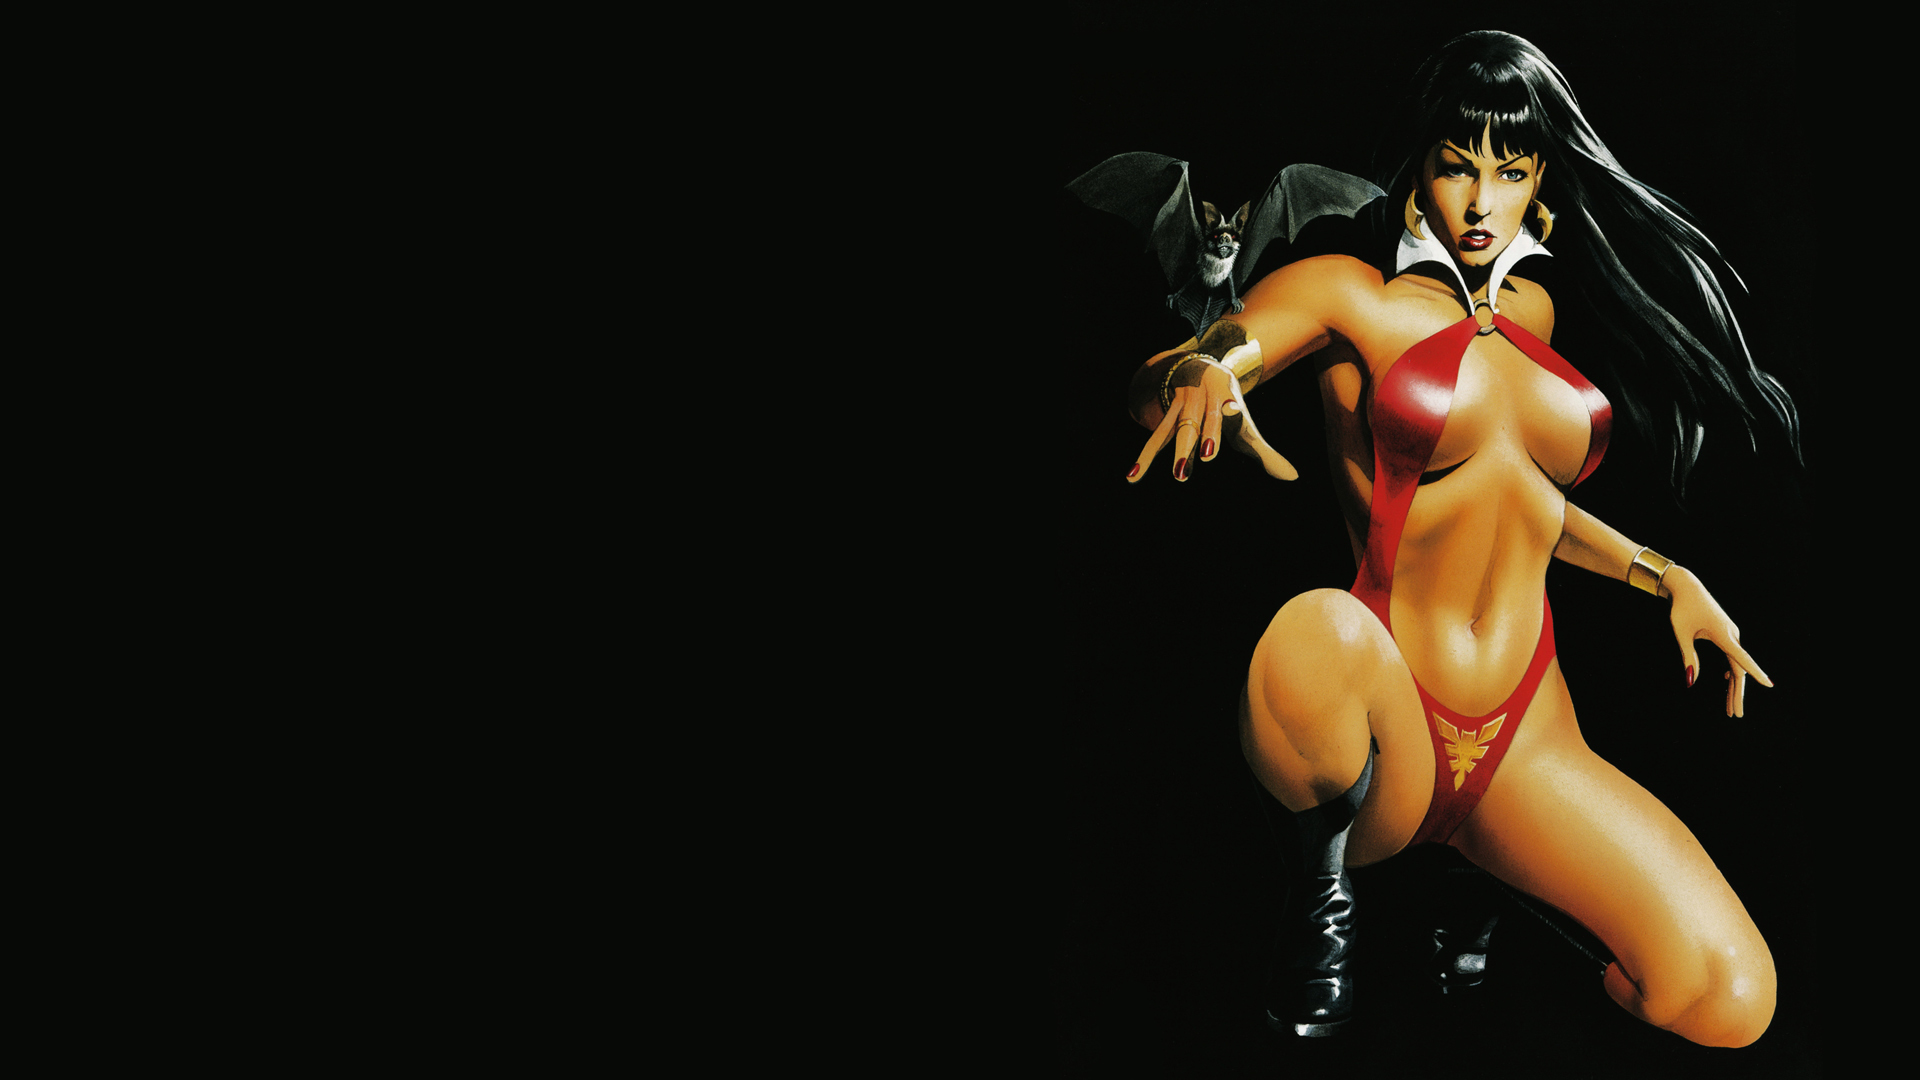 boobs woman Vampirella Vampires HD Wallpaper